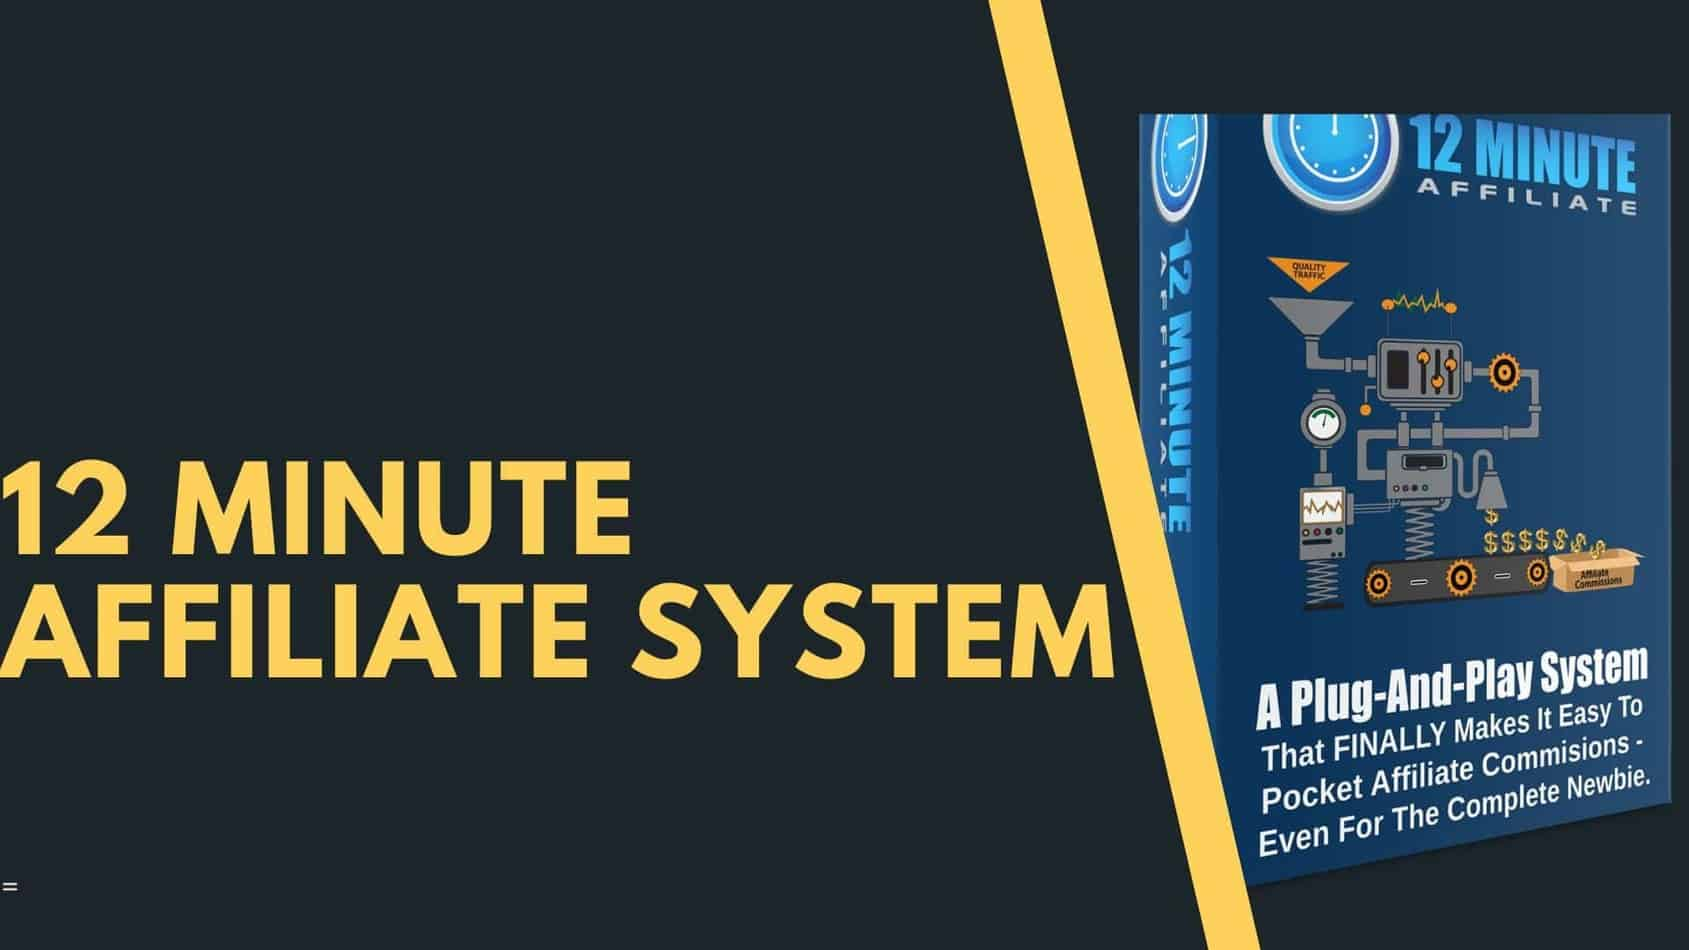 12 Minute Affiliate System Coupon Discount Code May 2020